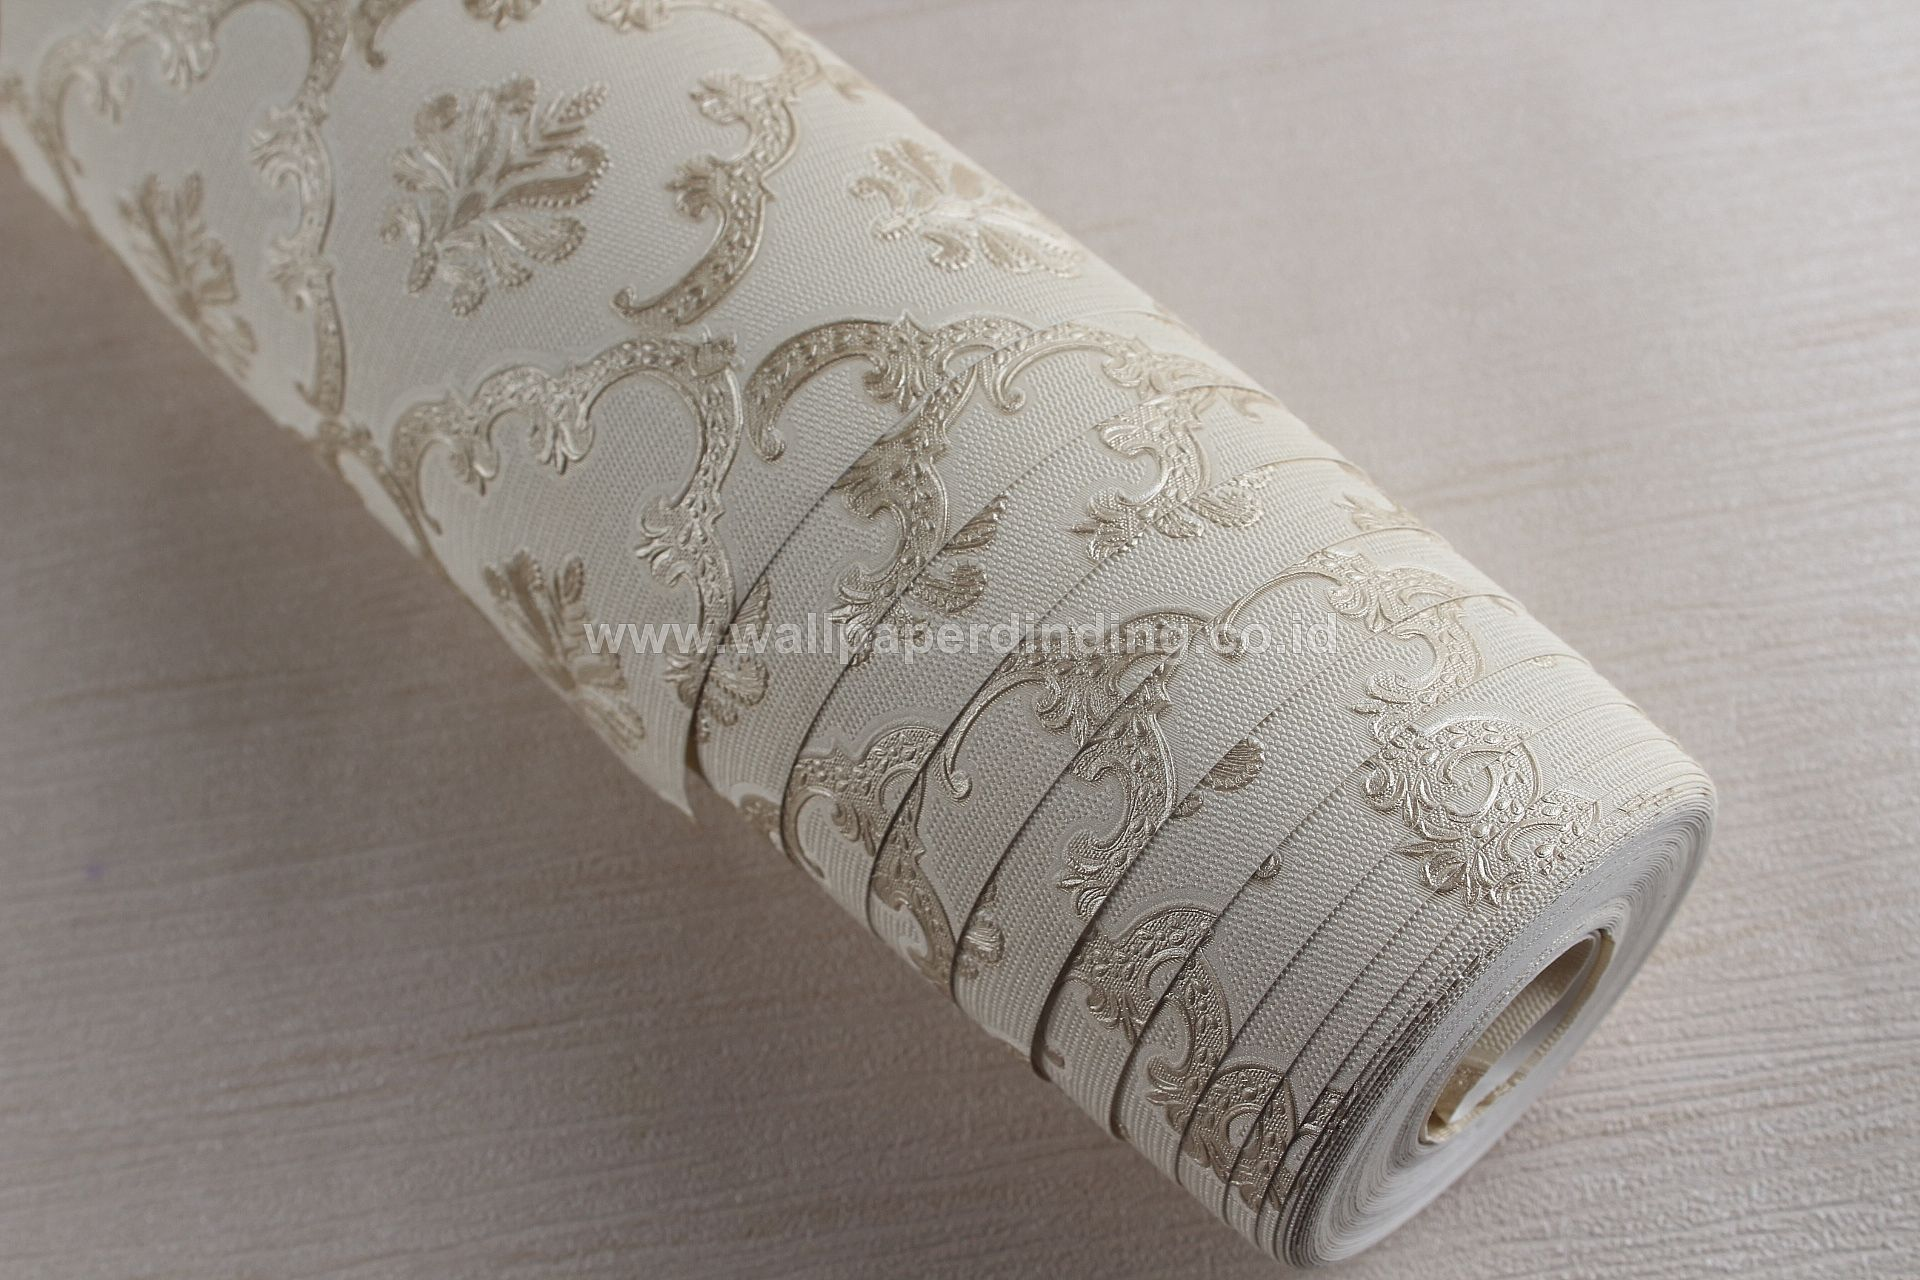 Wallpaper Dinding Batik Putih Gold D1808-3 - Java Wallpaper